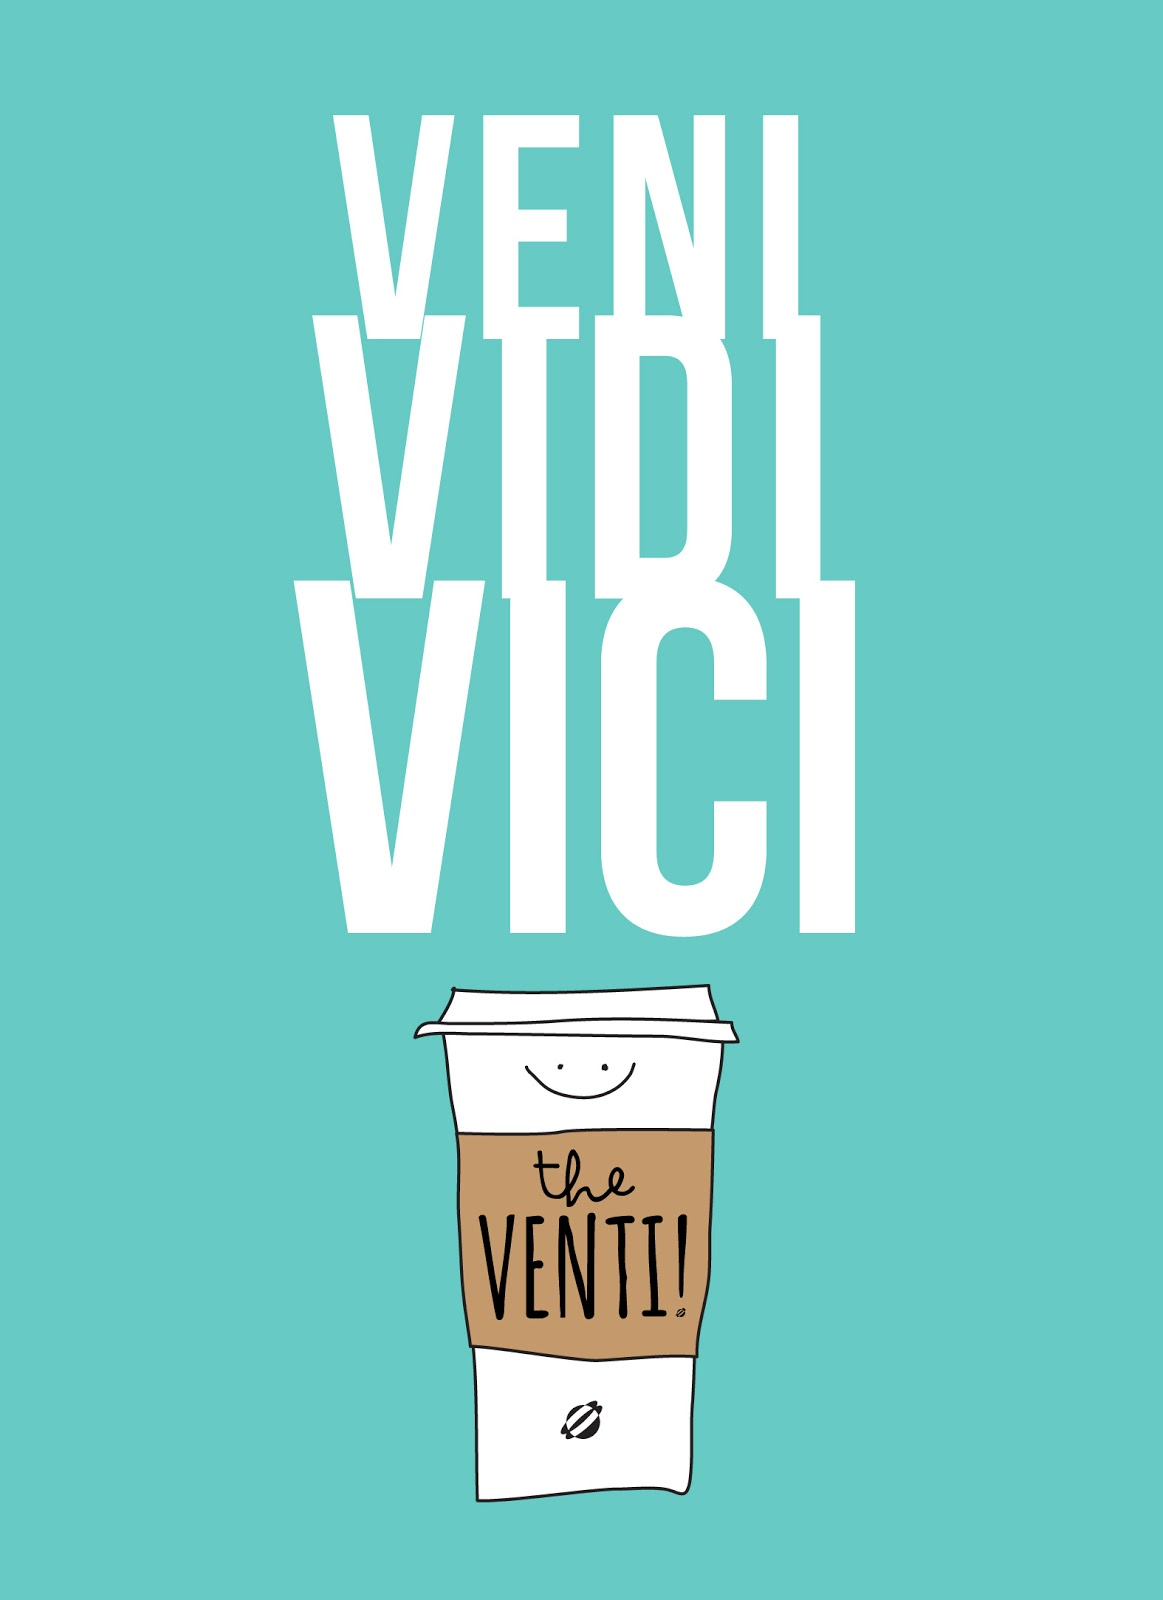 LostBumblebee ©2015 MDBN :: VENI, VIDI, VICI that VENTI! :: FREE - Donate to download- PRINTABLE :: FOR PERSONAL USE ONLY! coffee, cafe